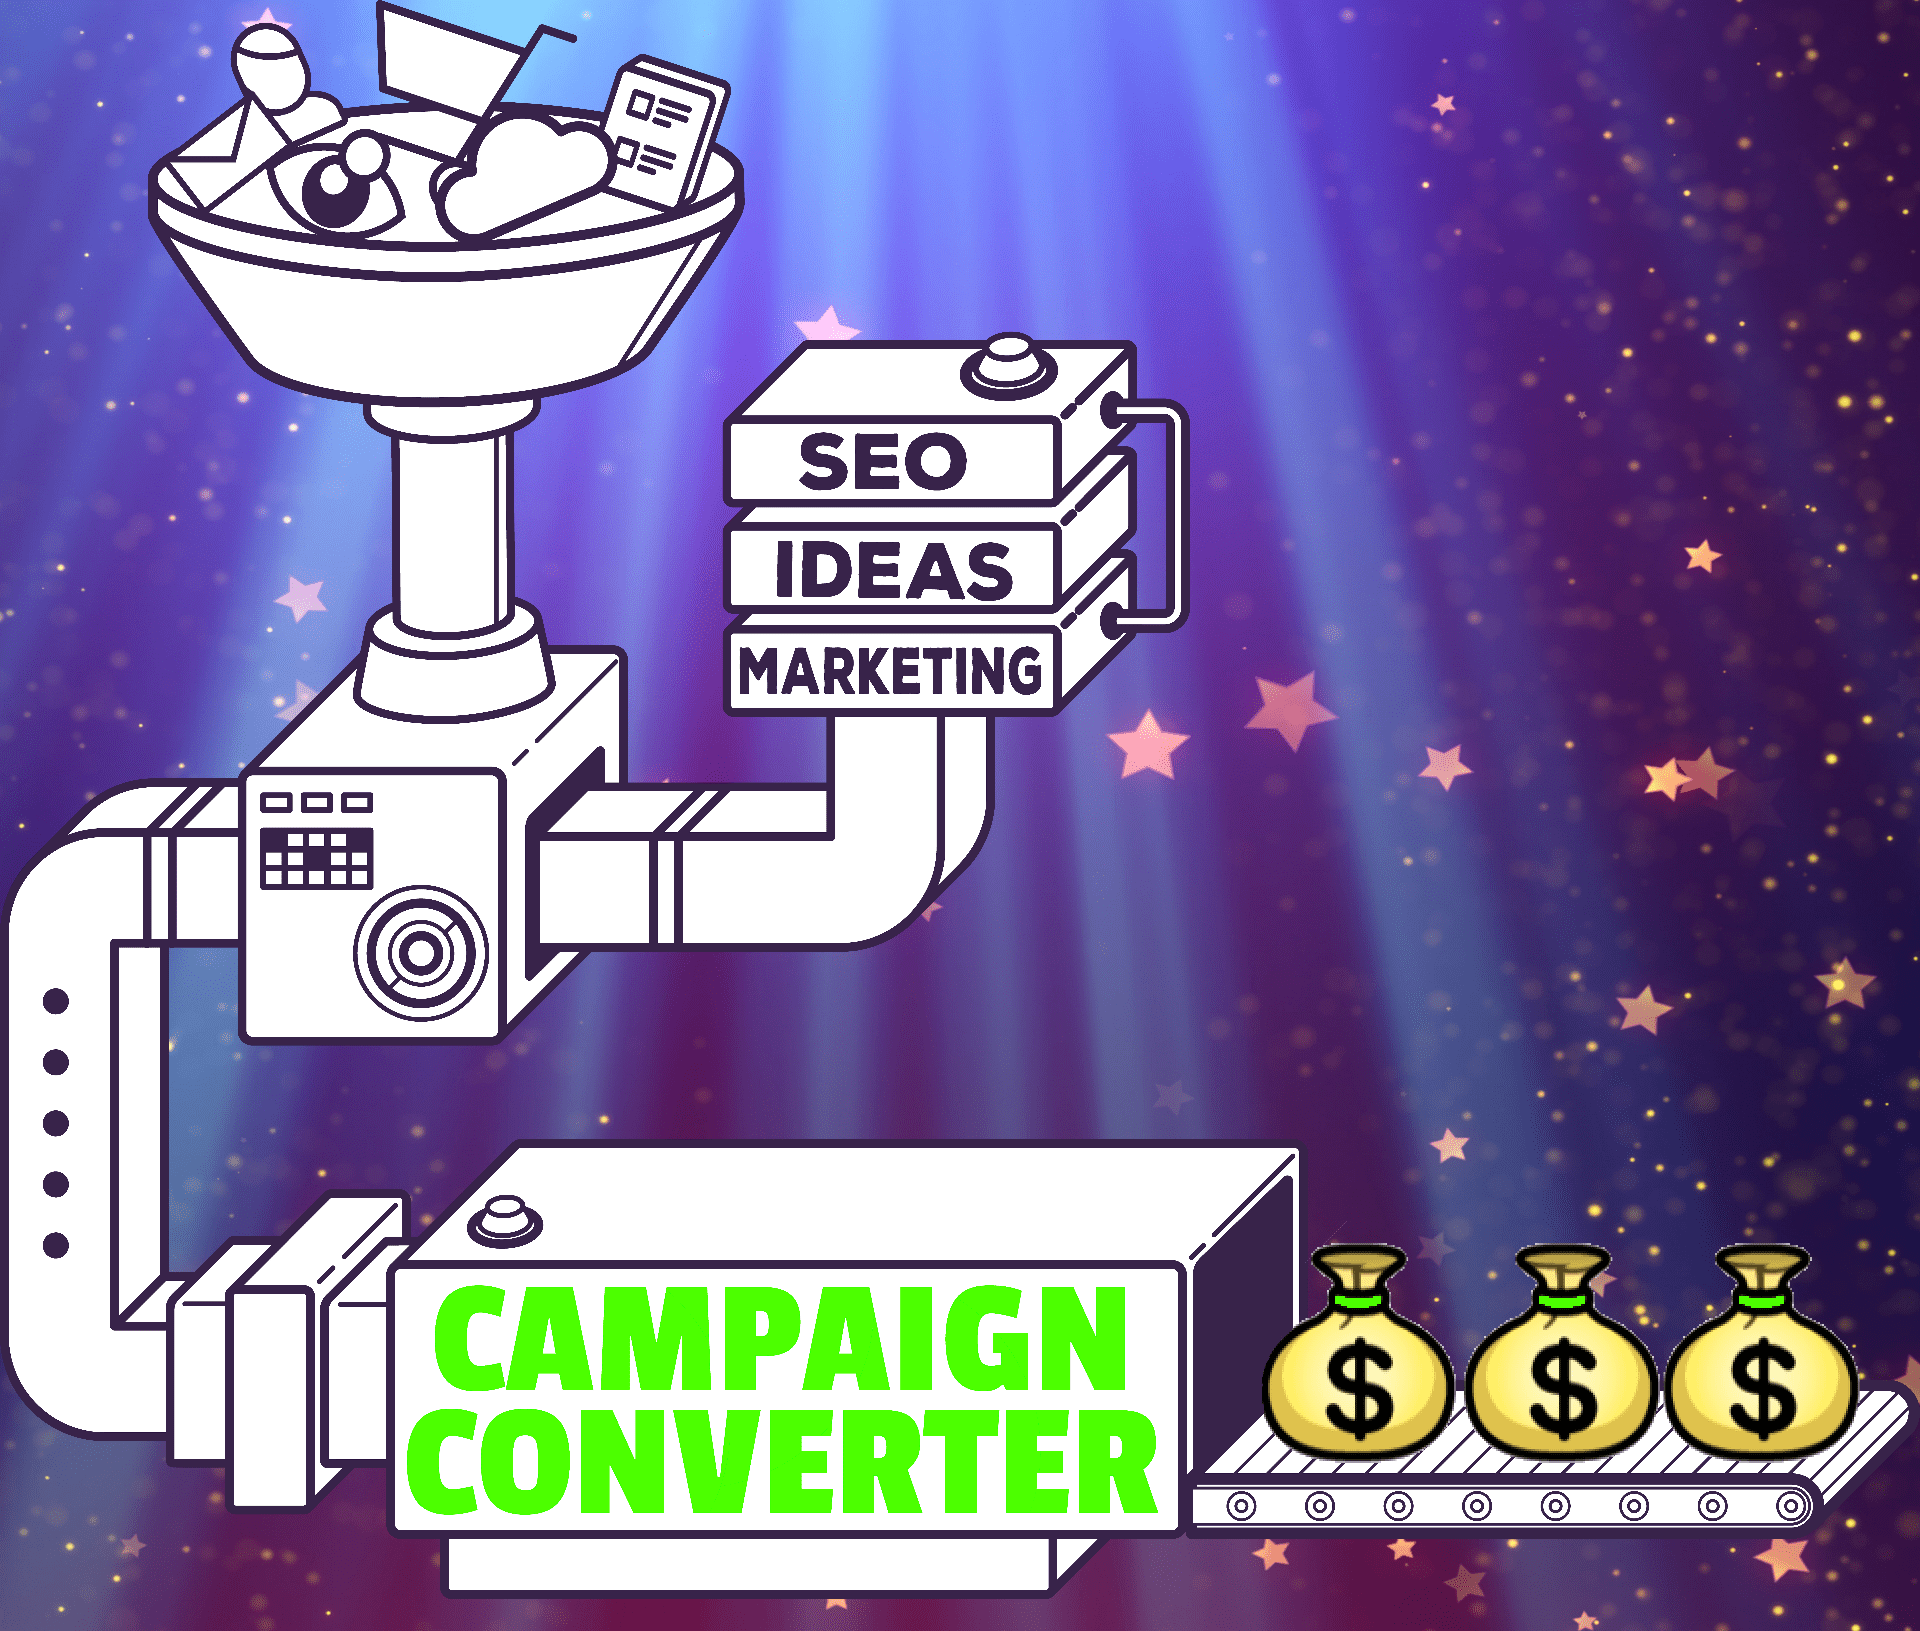 [GET] Dawud Islam – Campaign Converter Free Download